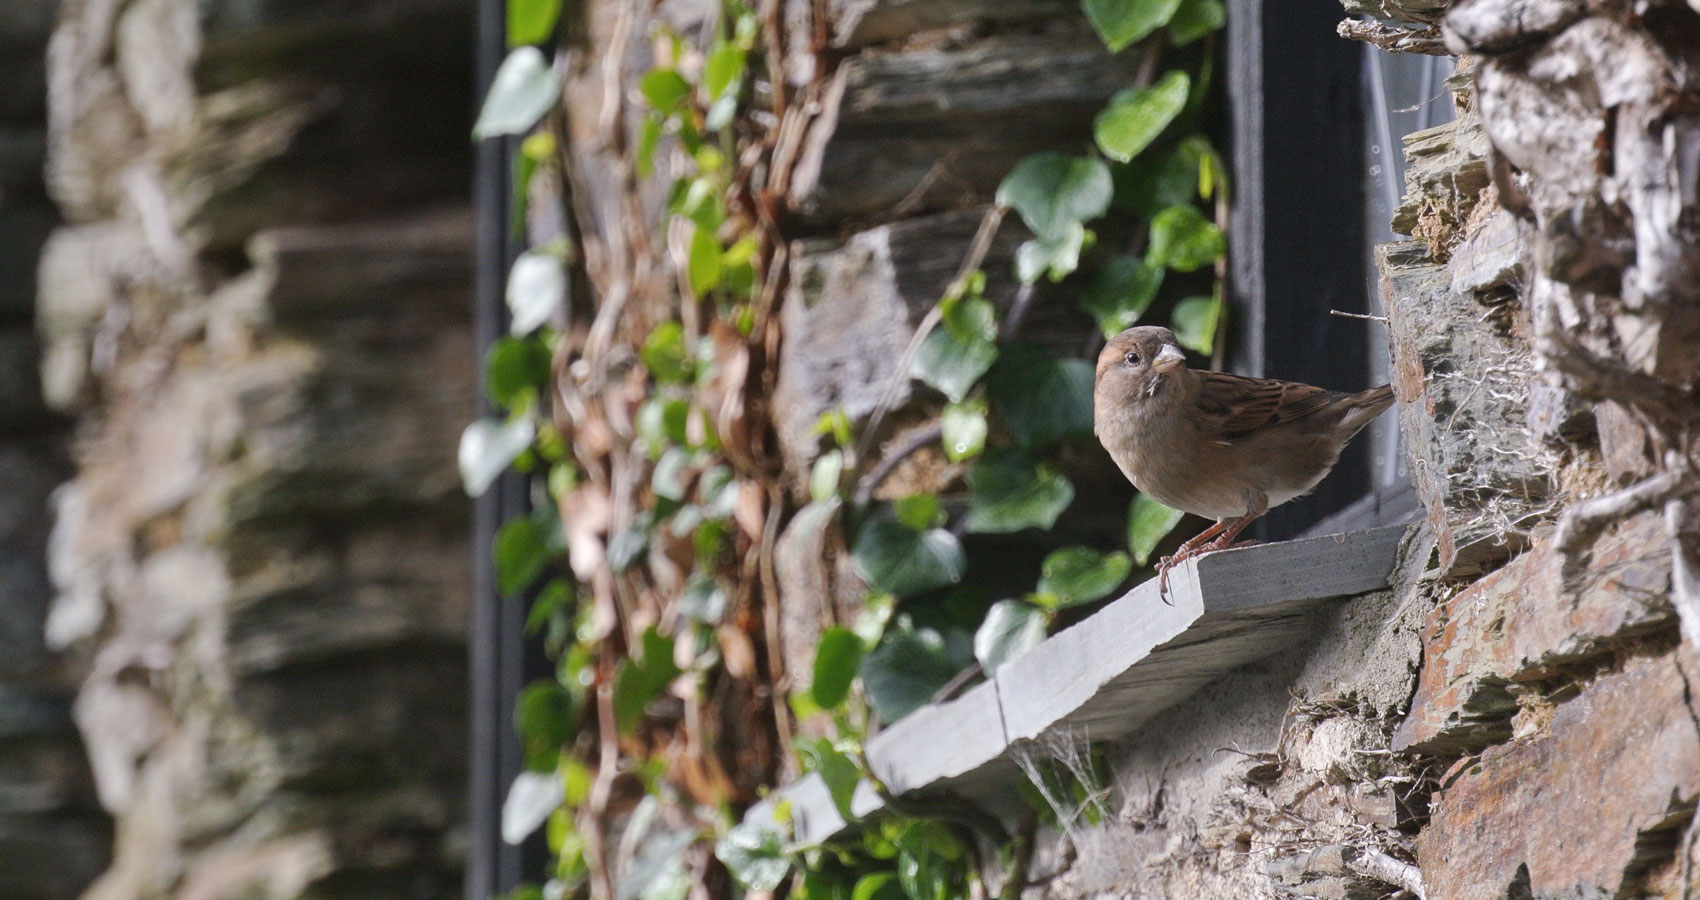 A Bird Landed On My Window, a poem by Eric Danhoff at Spillwords.com